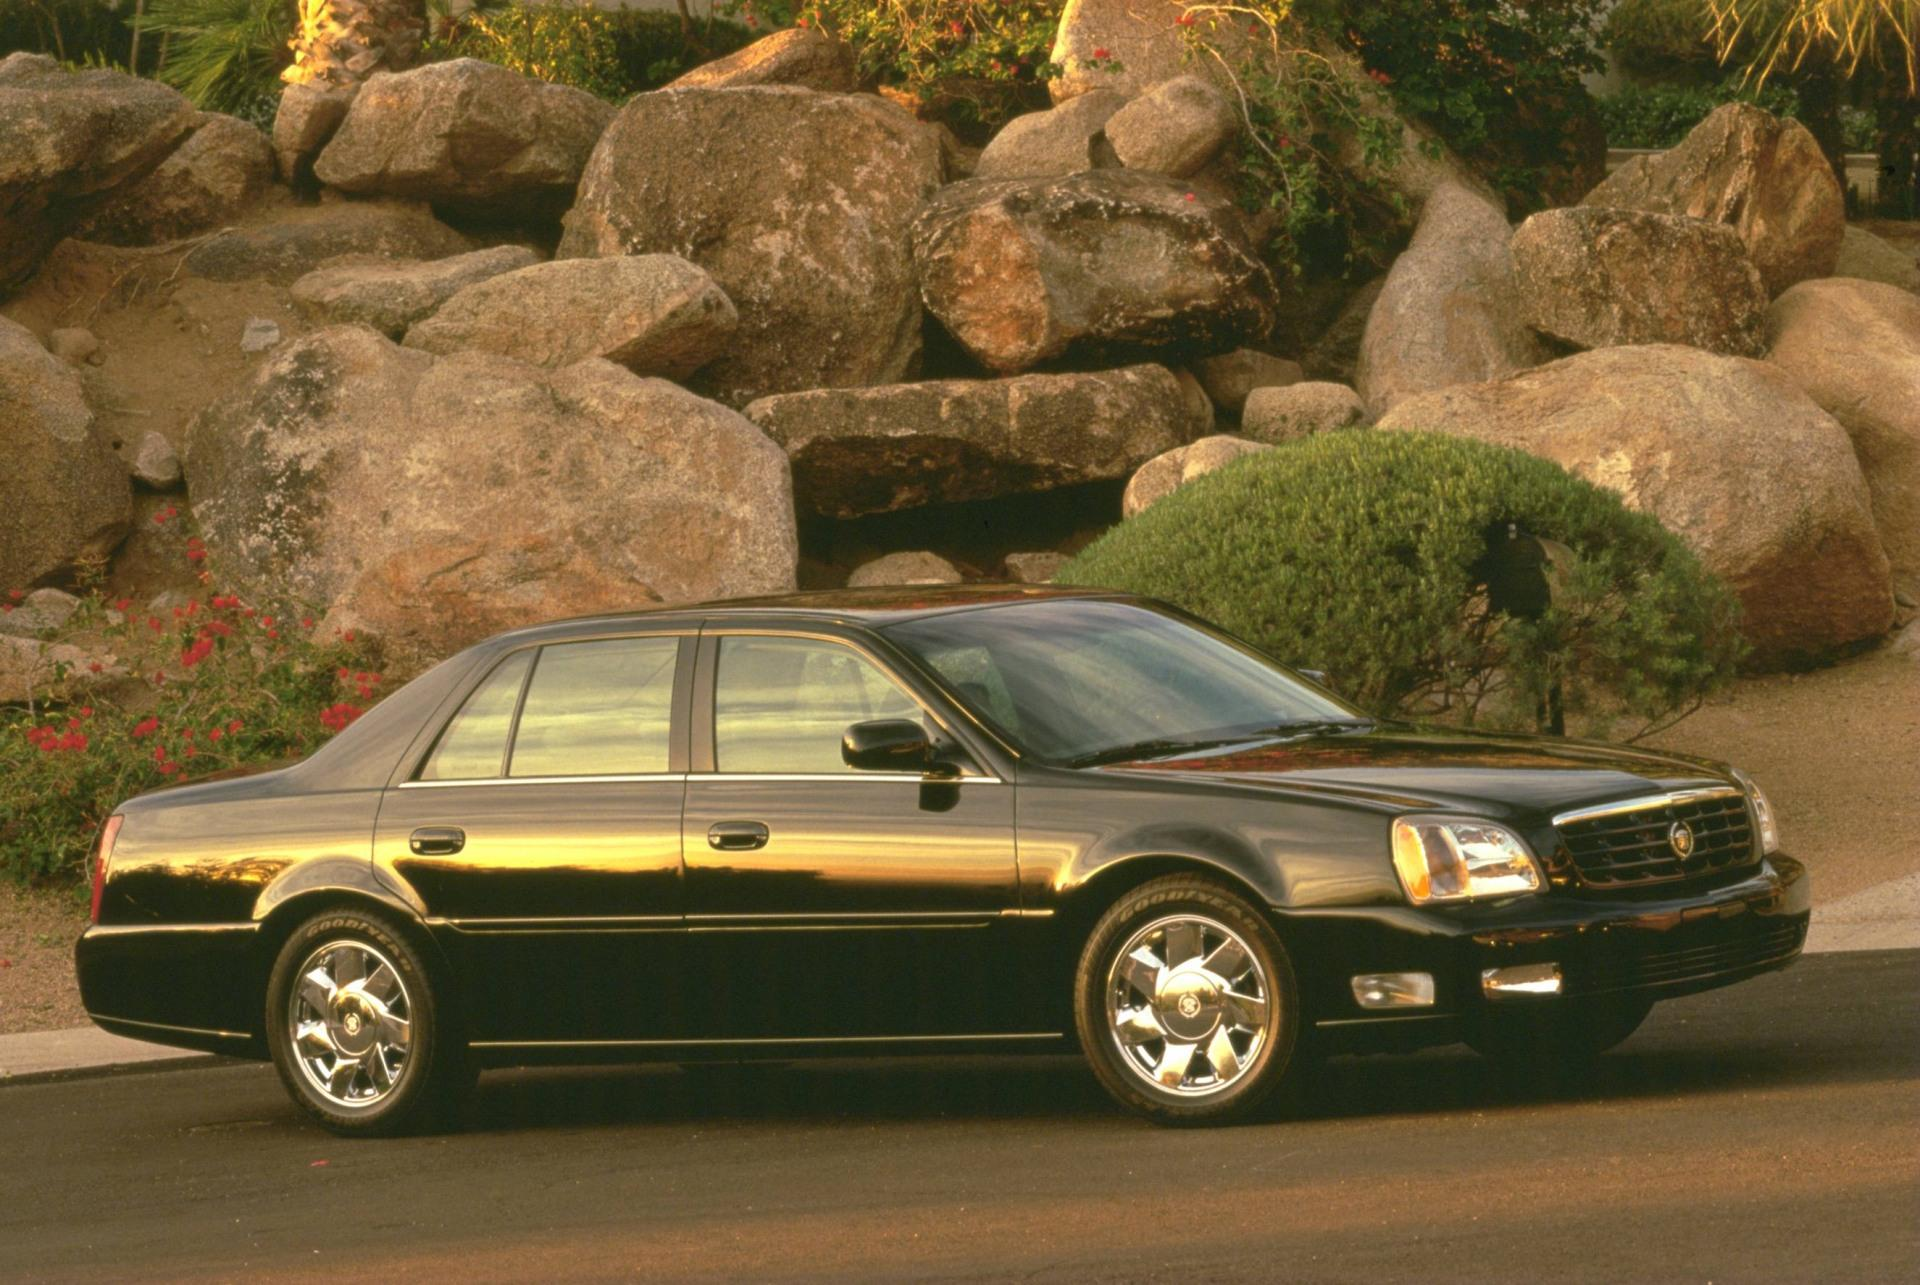 2000 cadillac deville pictures history value research. Cars Review. Best American Auto & Cars Review